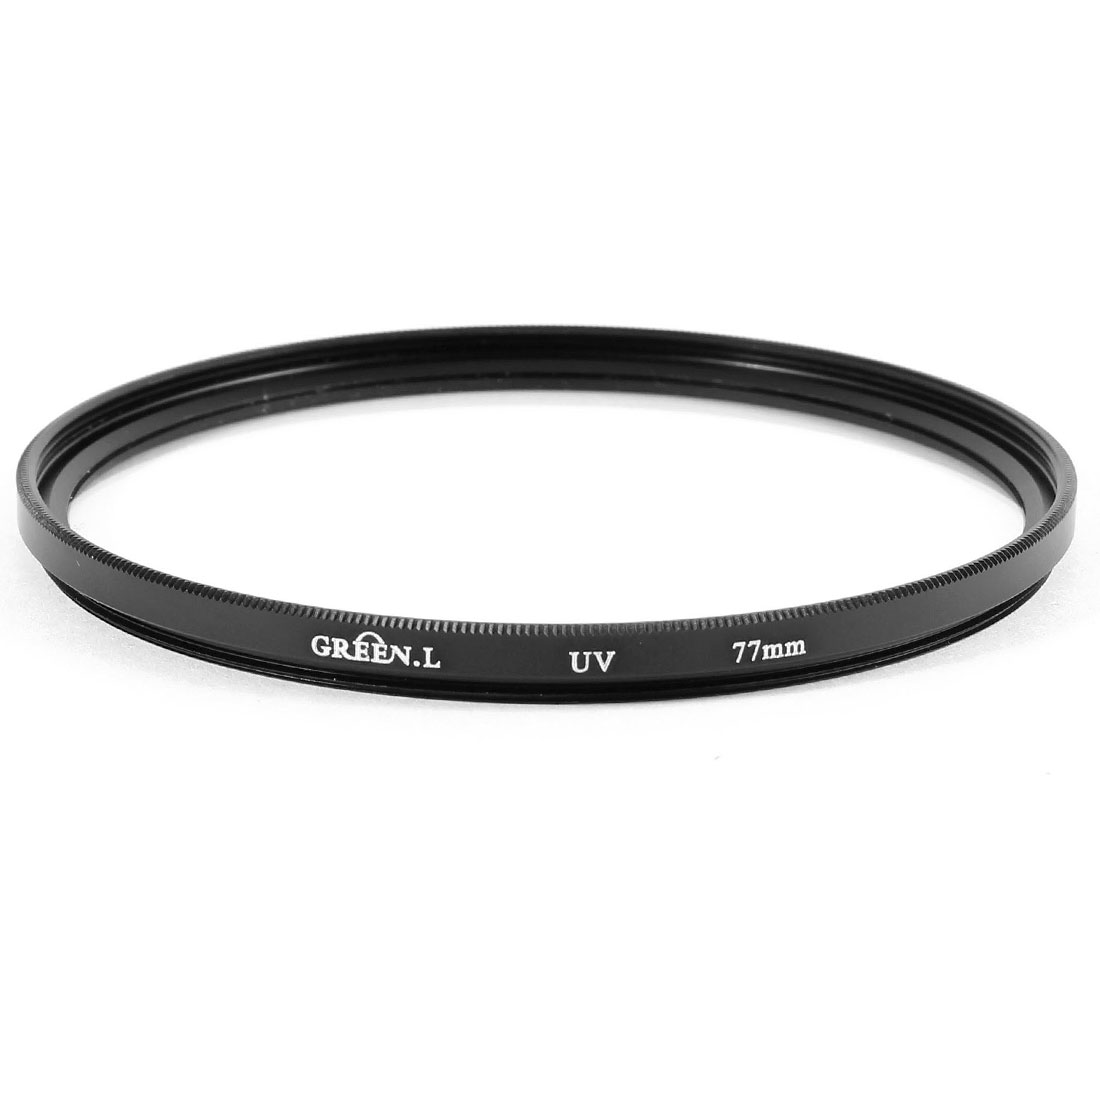 77mm Protector Ultra-Violet UV Filter Lens Black for Digital DSLR SLR Camara